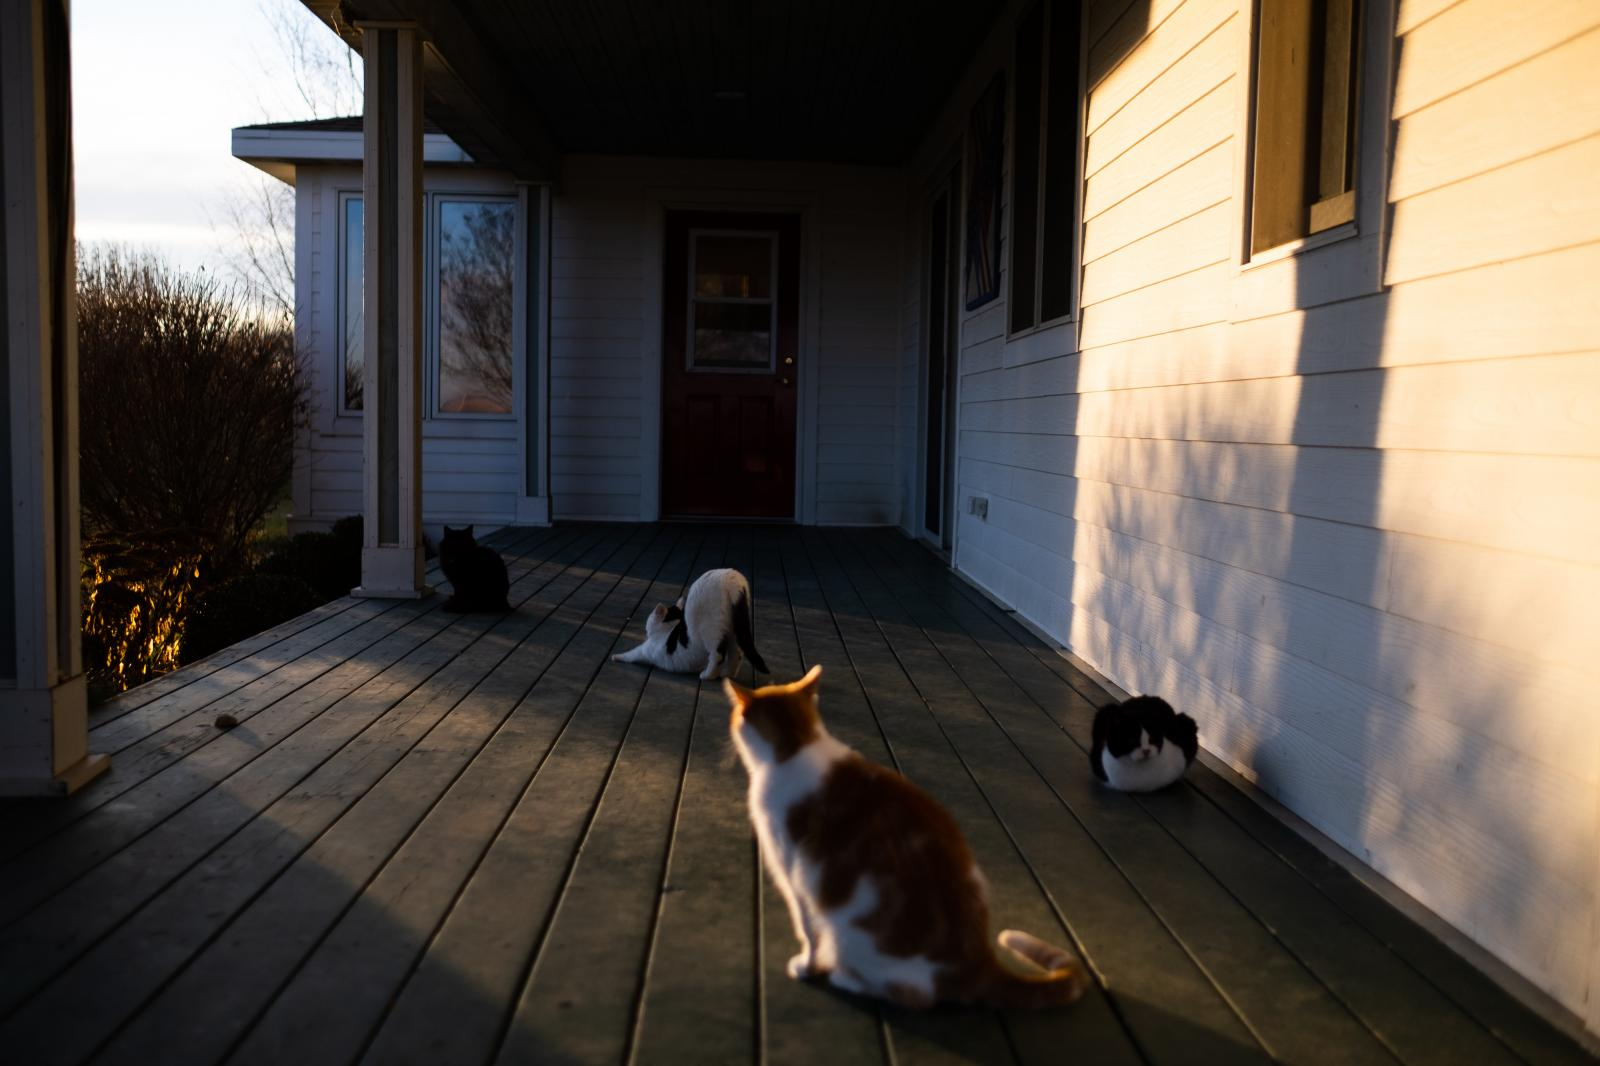 We have many barn cats on our farm. My parents (mostly my mom) take care of them and feed them twice a day.